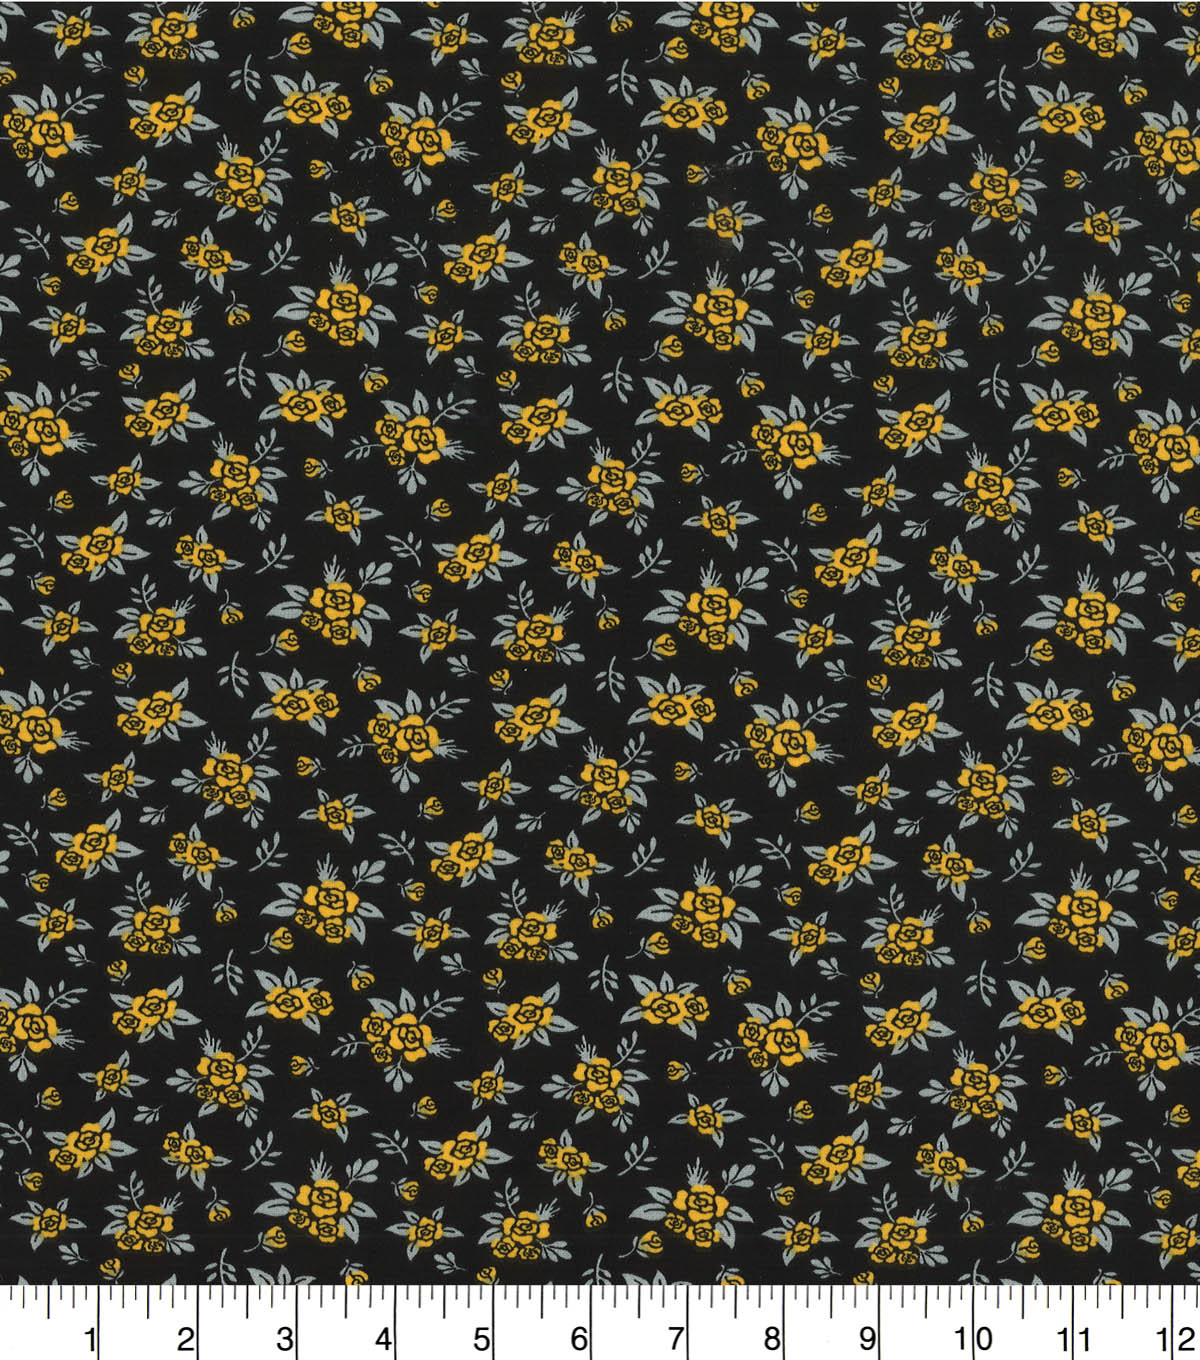 Quilter\u0027s Showcase™ Fabric 44\u0027\u0027-Amber Yellow Ditsy Floral on Black